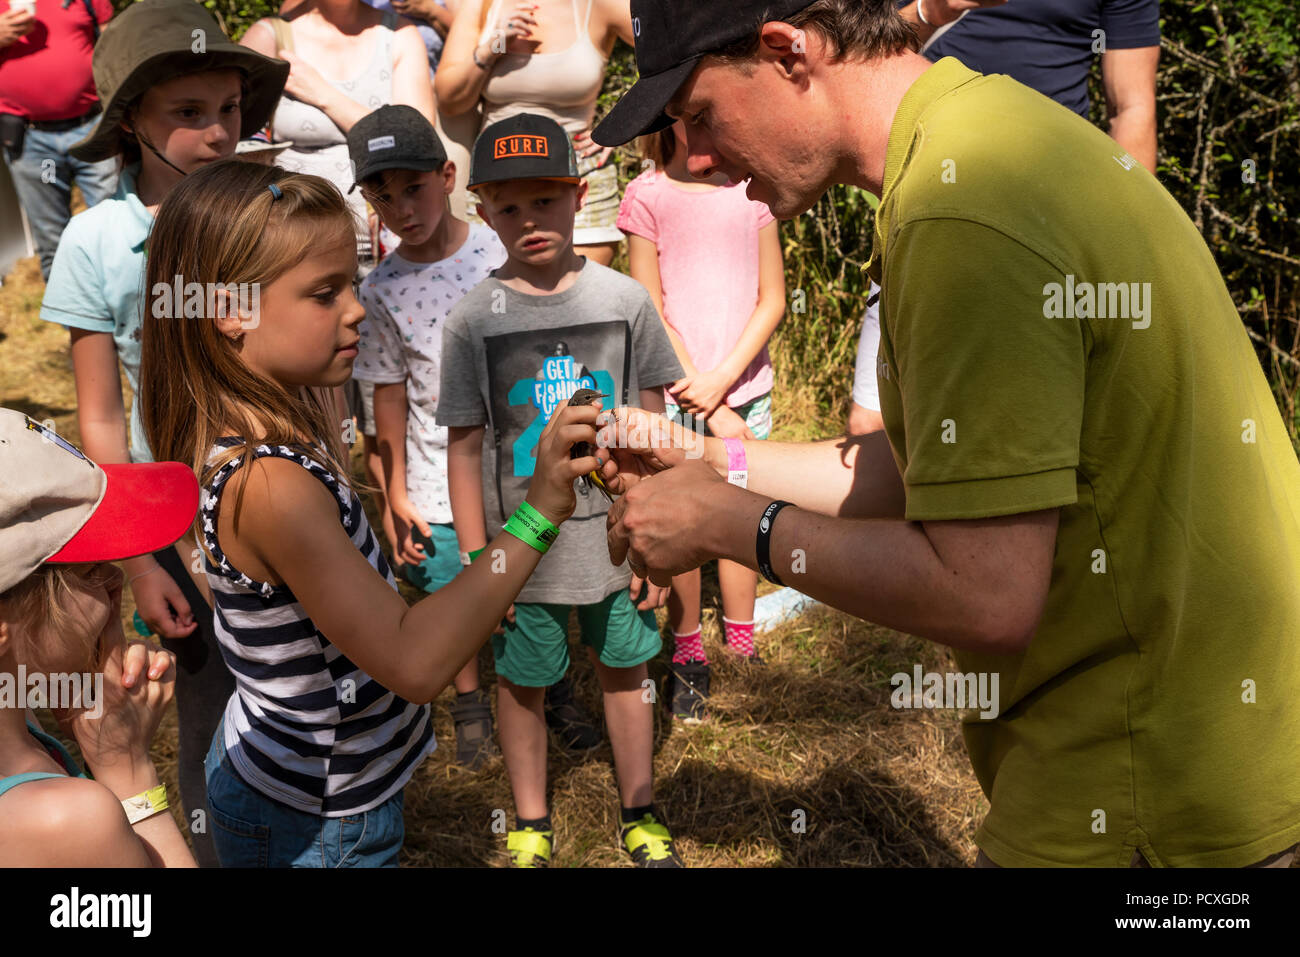 woodstock-uk-4th-august-2018-visitors-fl